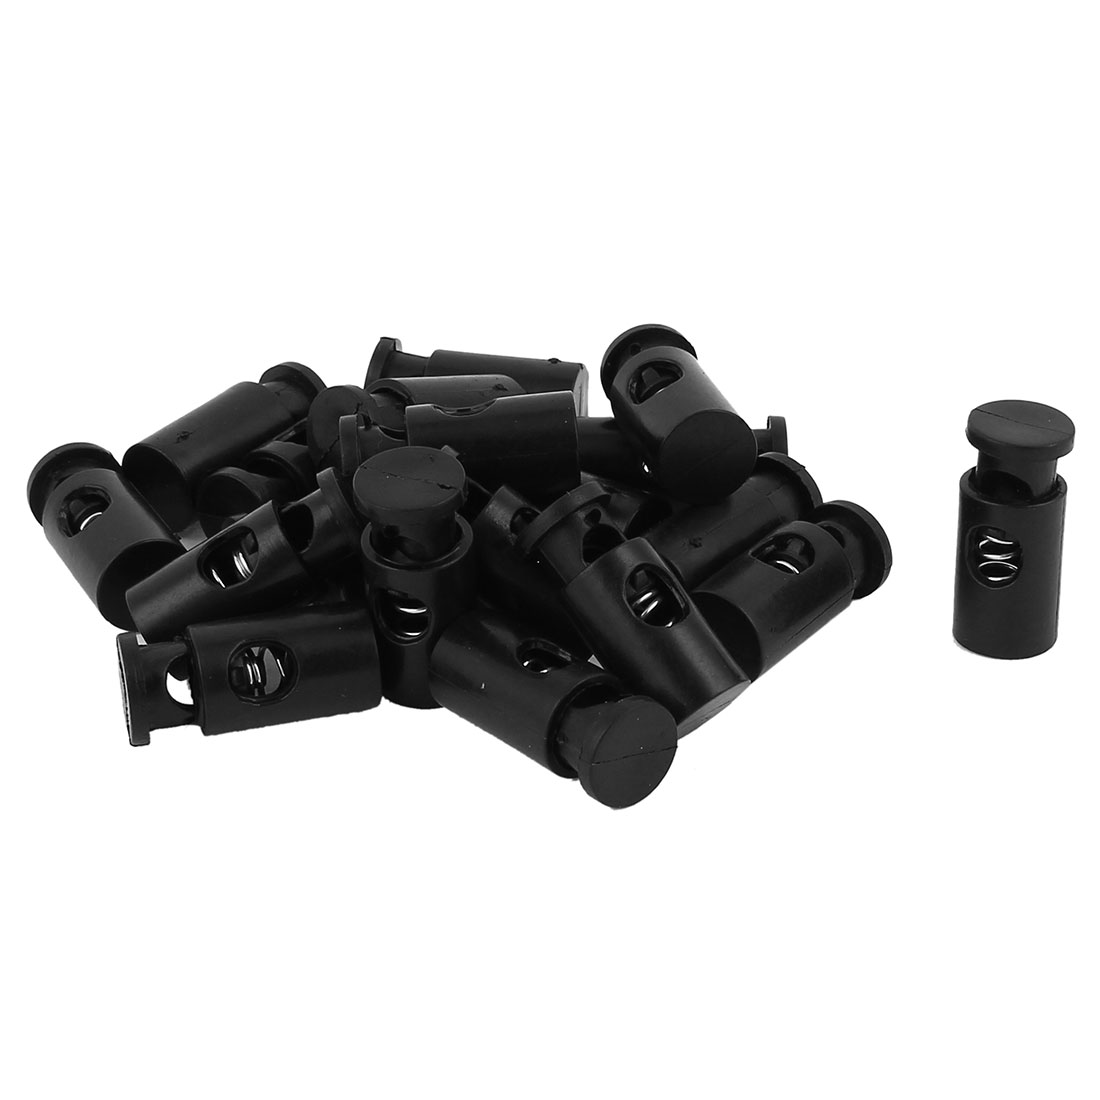 20 Pcs 6mm Diameter Hole Spring Loaded Clamps Cord Locks Ends Black